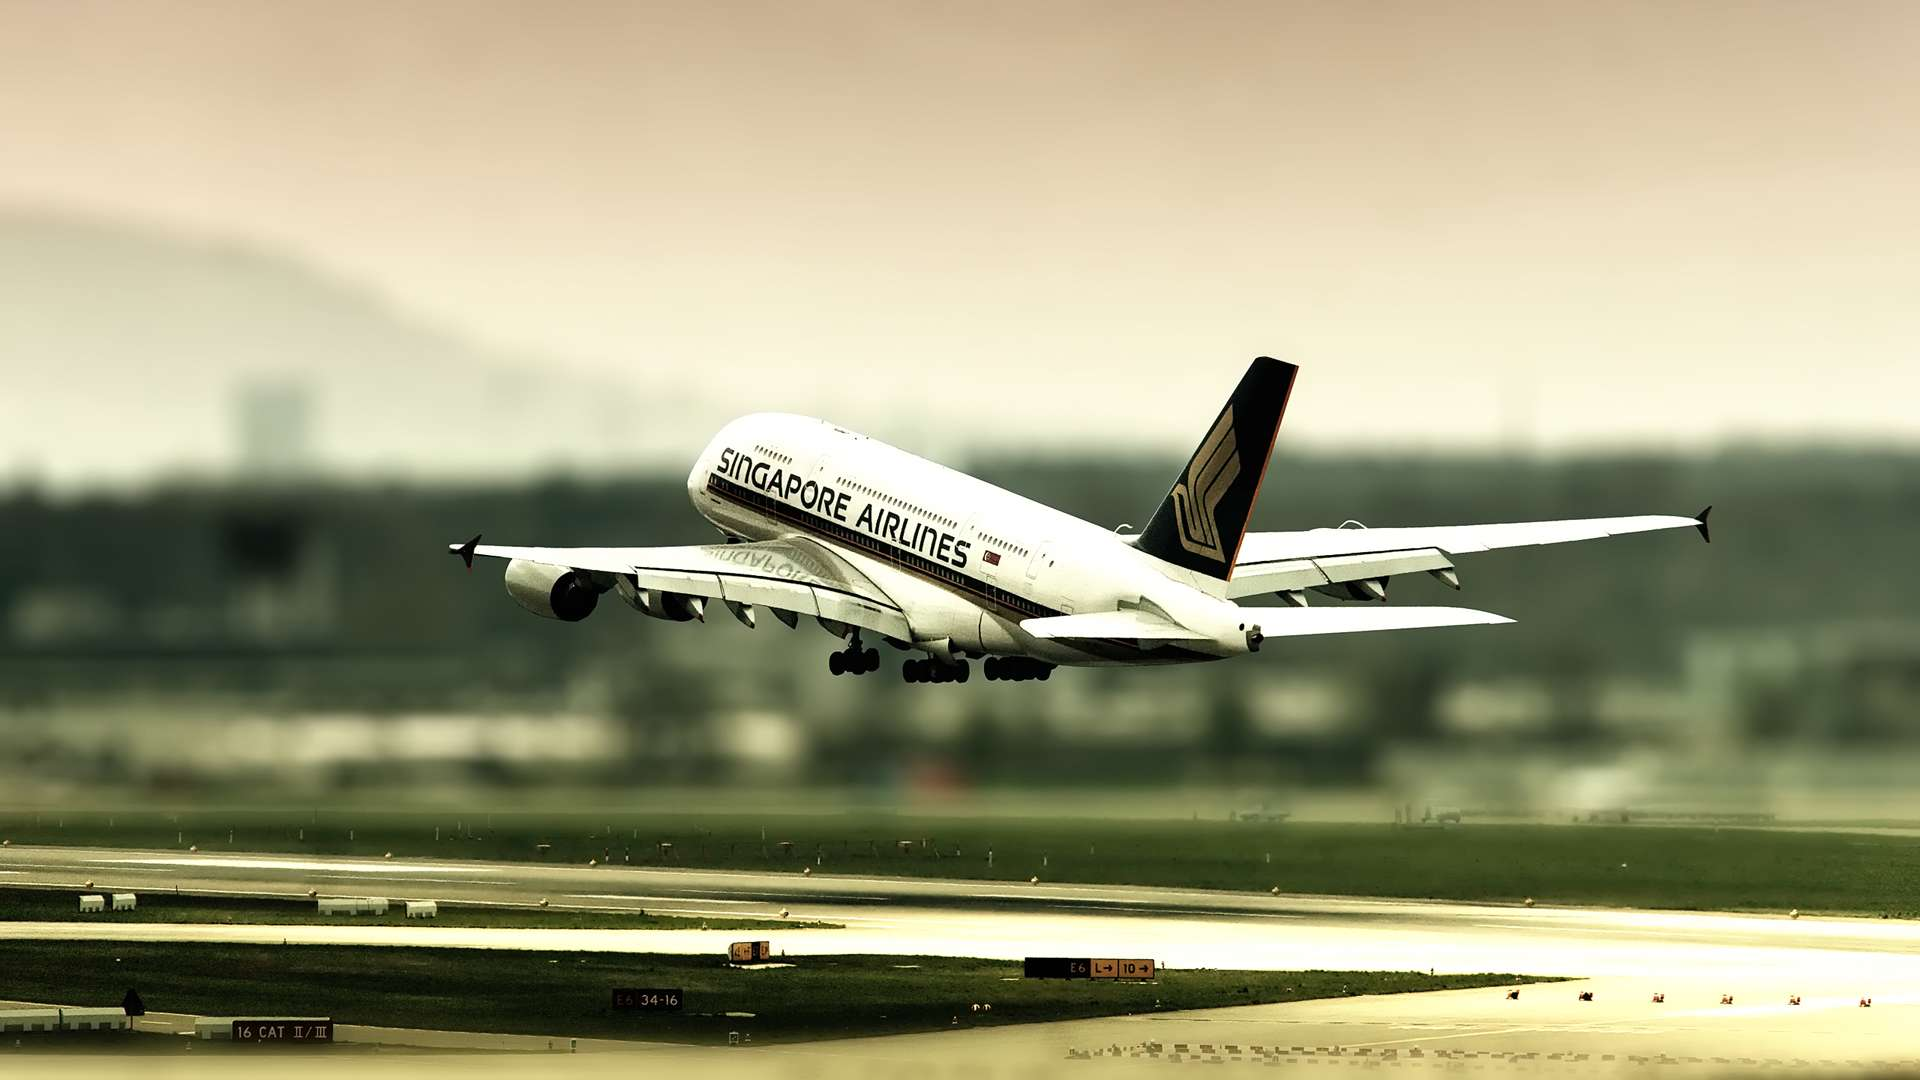 Airbus A380 Singapore Airlines Landing HD Wallpaper FullHDWpp 1920x1080